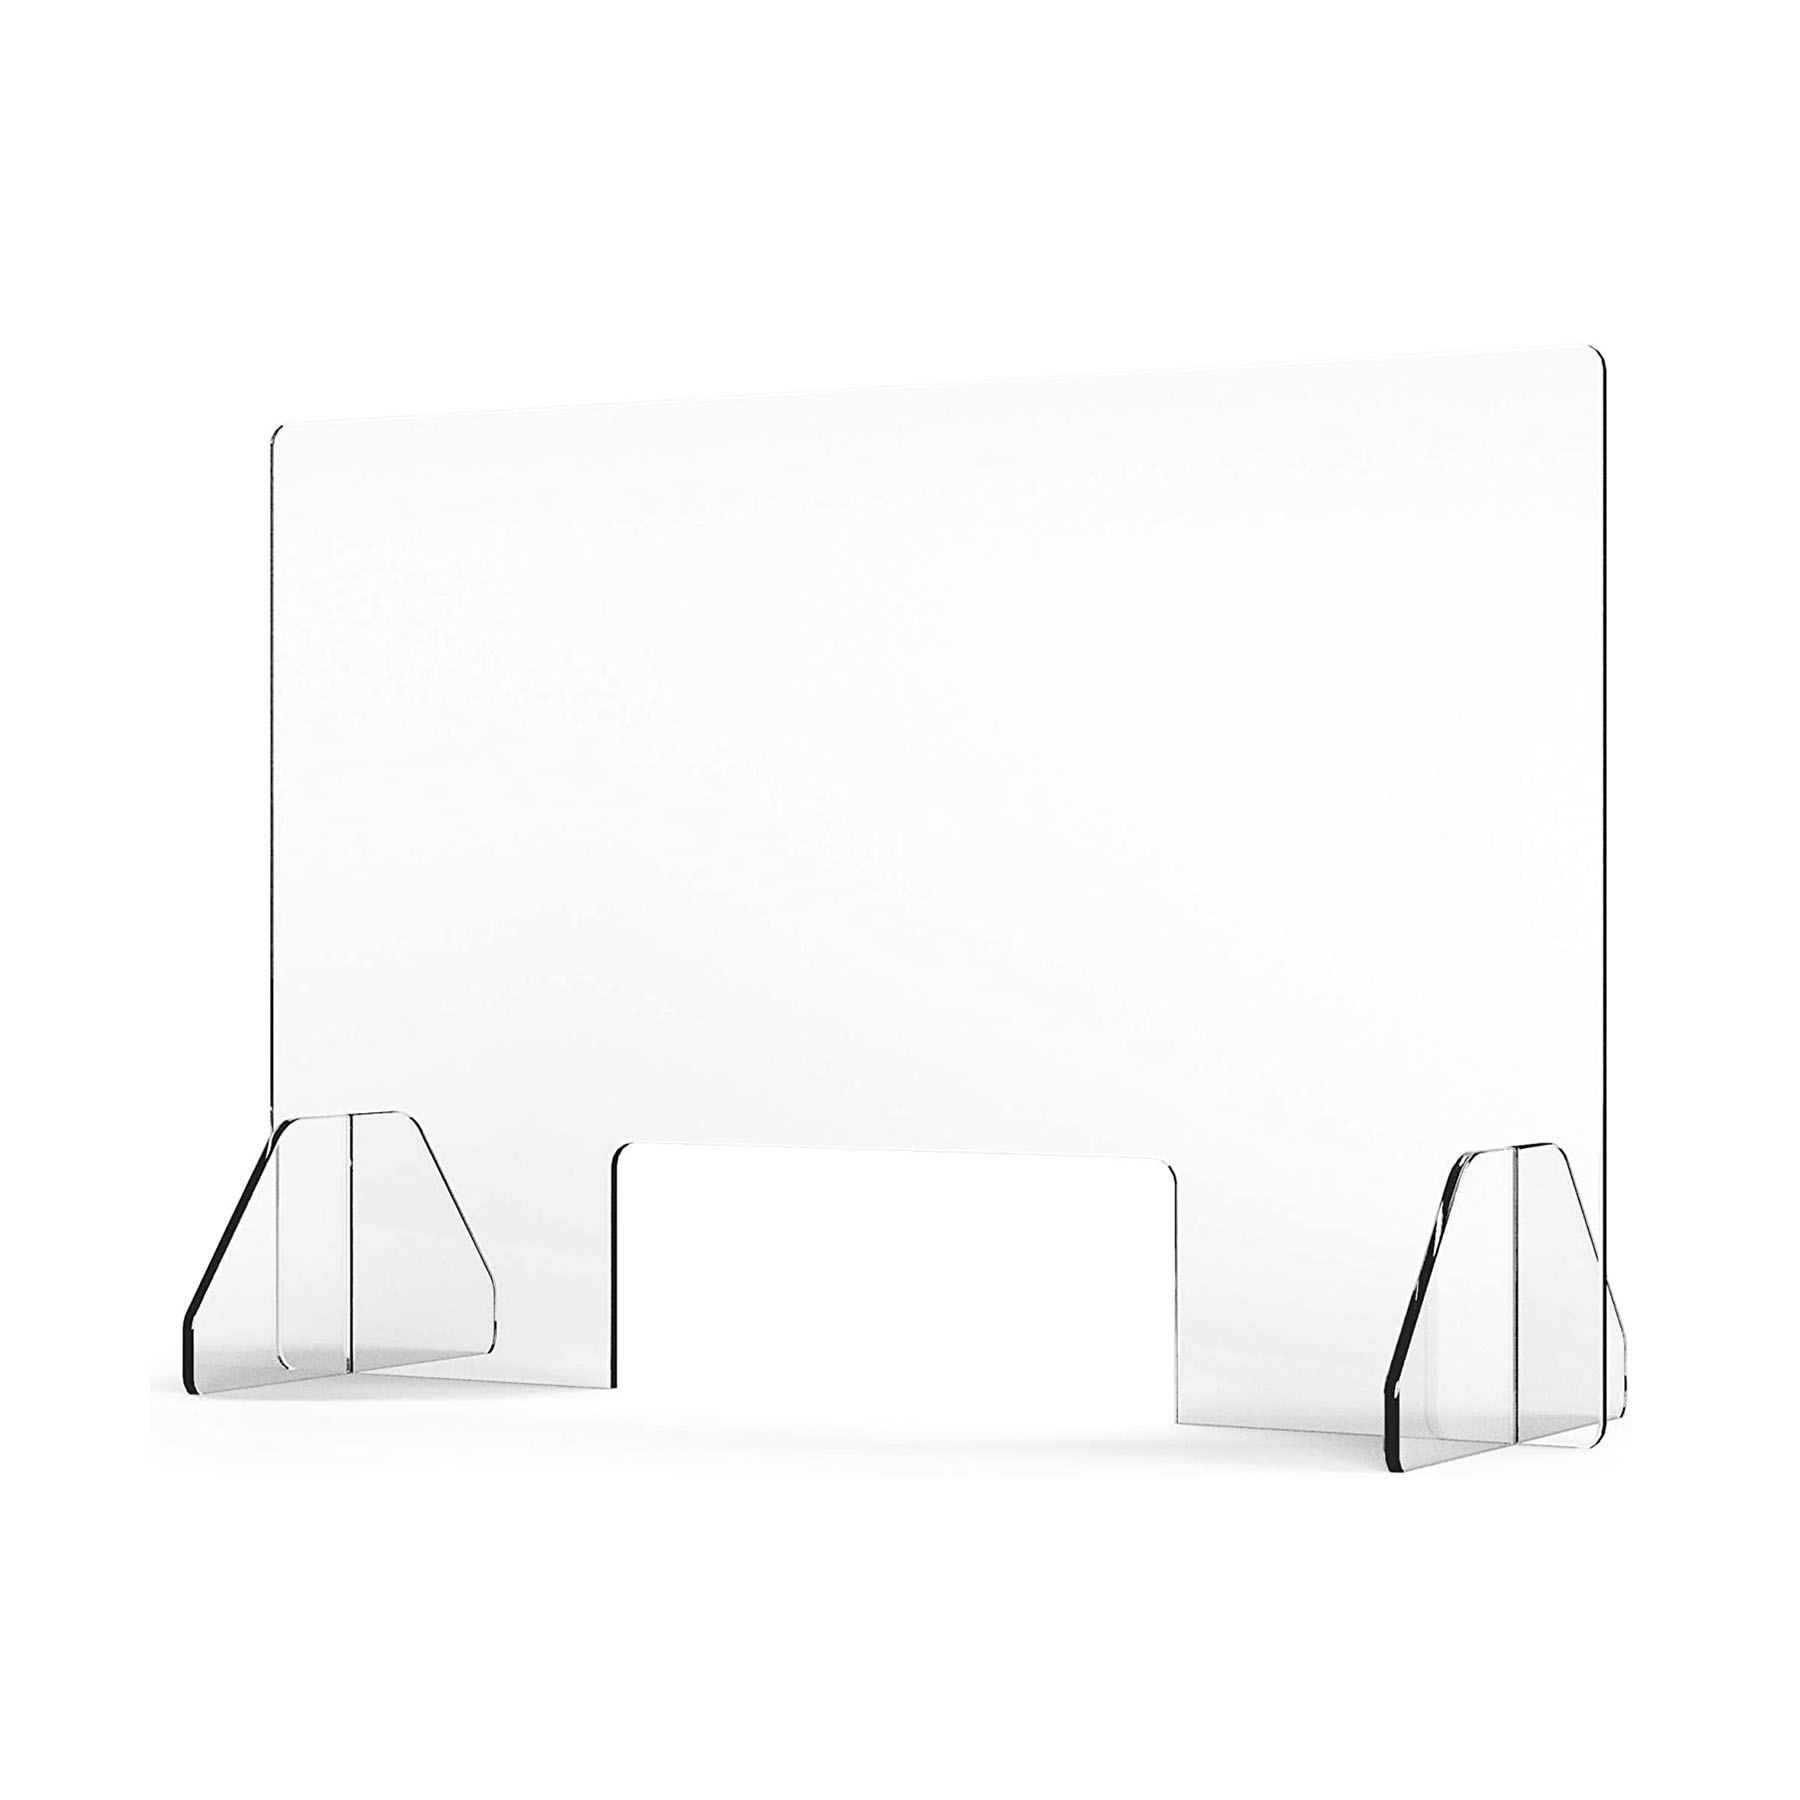 30 W x 30 H Multi-Sizes Sneeze Guard Panel for Desk VARWANEO Counter and Table Clear Acrylic Plexiglass Shield